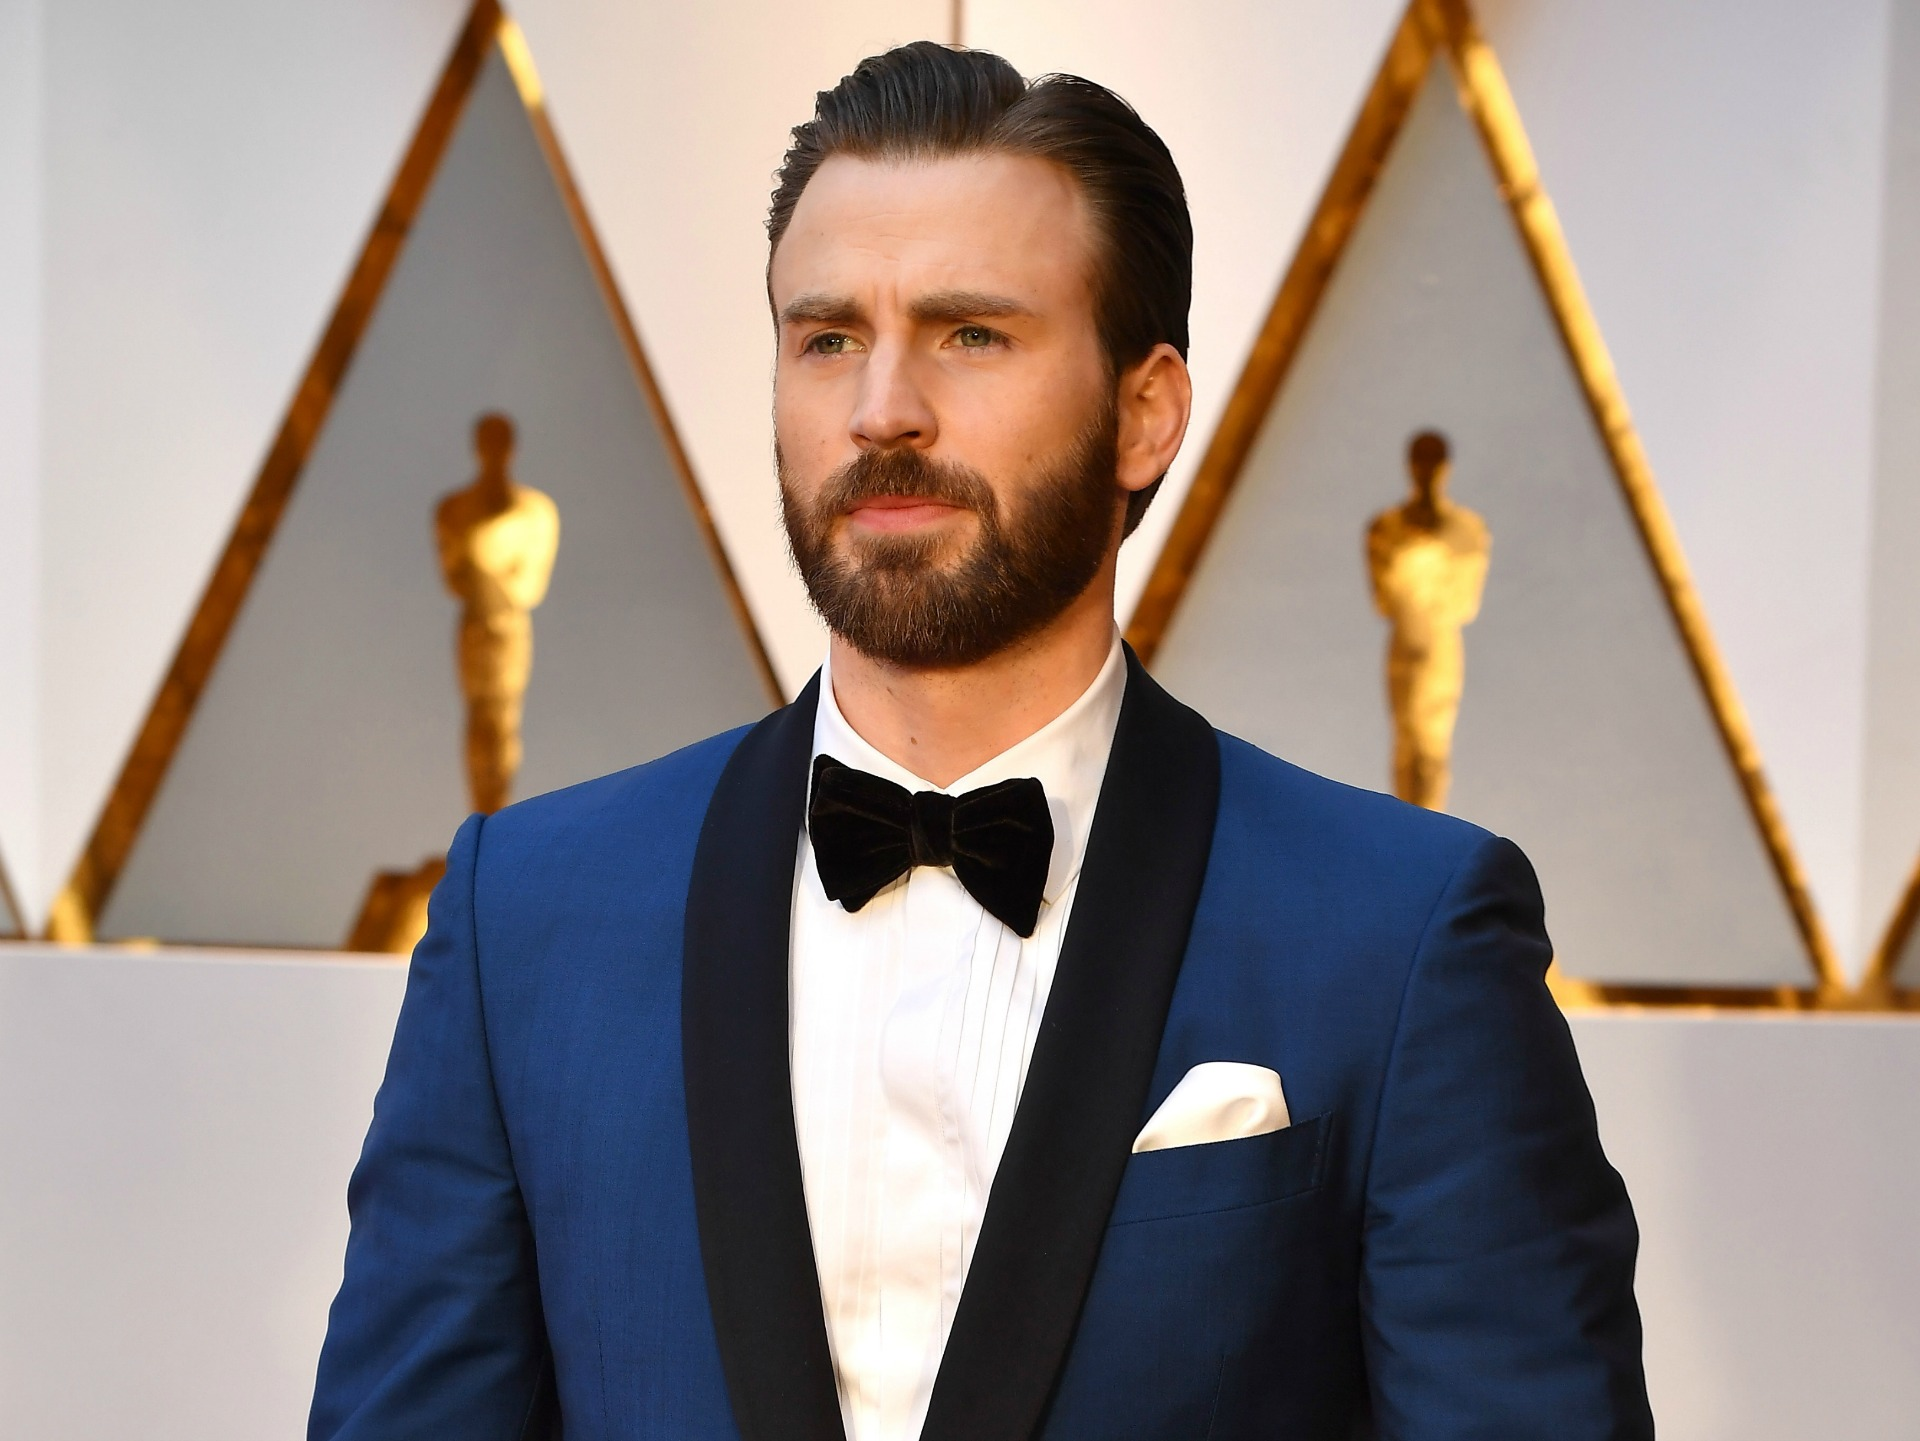 Chris Evans reunited with his dog and the internet loves it